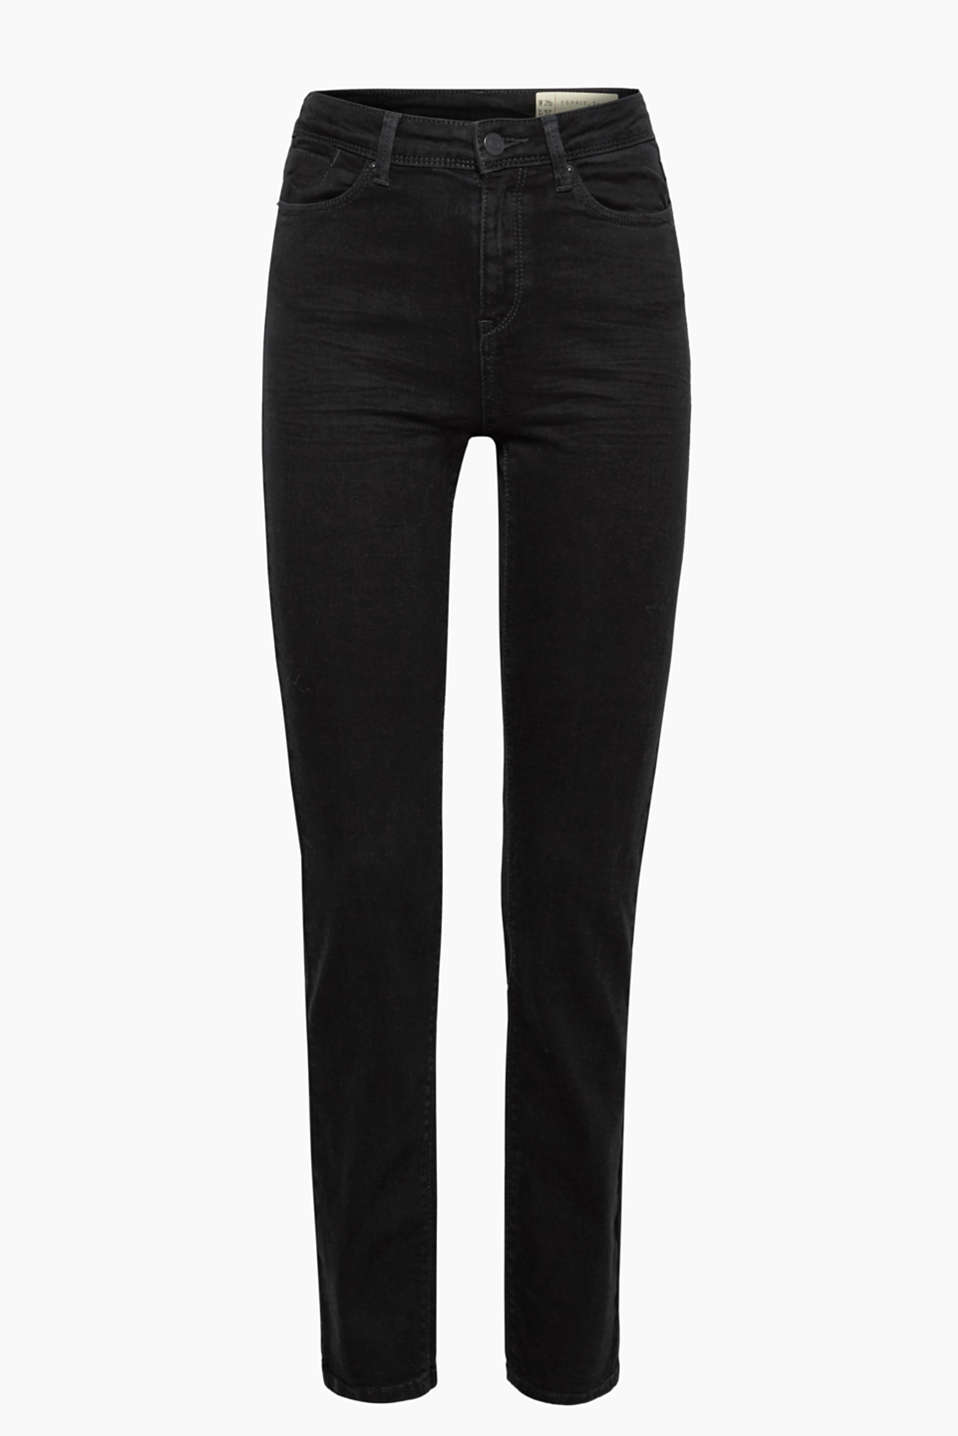 These high-waisted, straight-leg jeans in jet black stretch denim create a sensational silhouette!